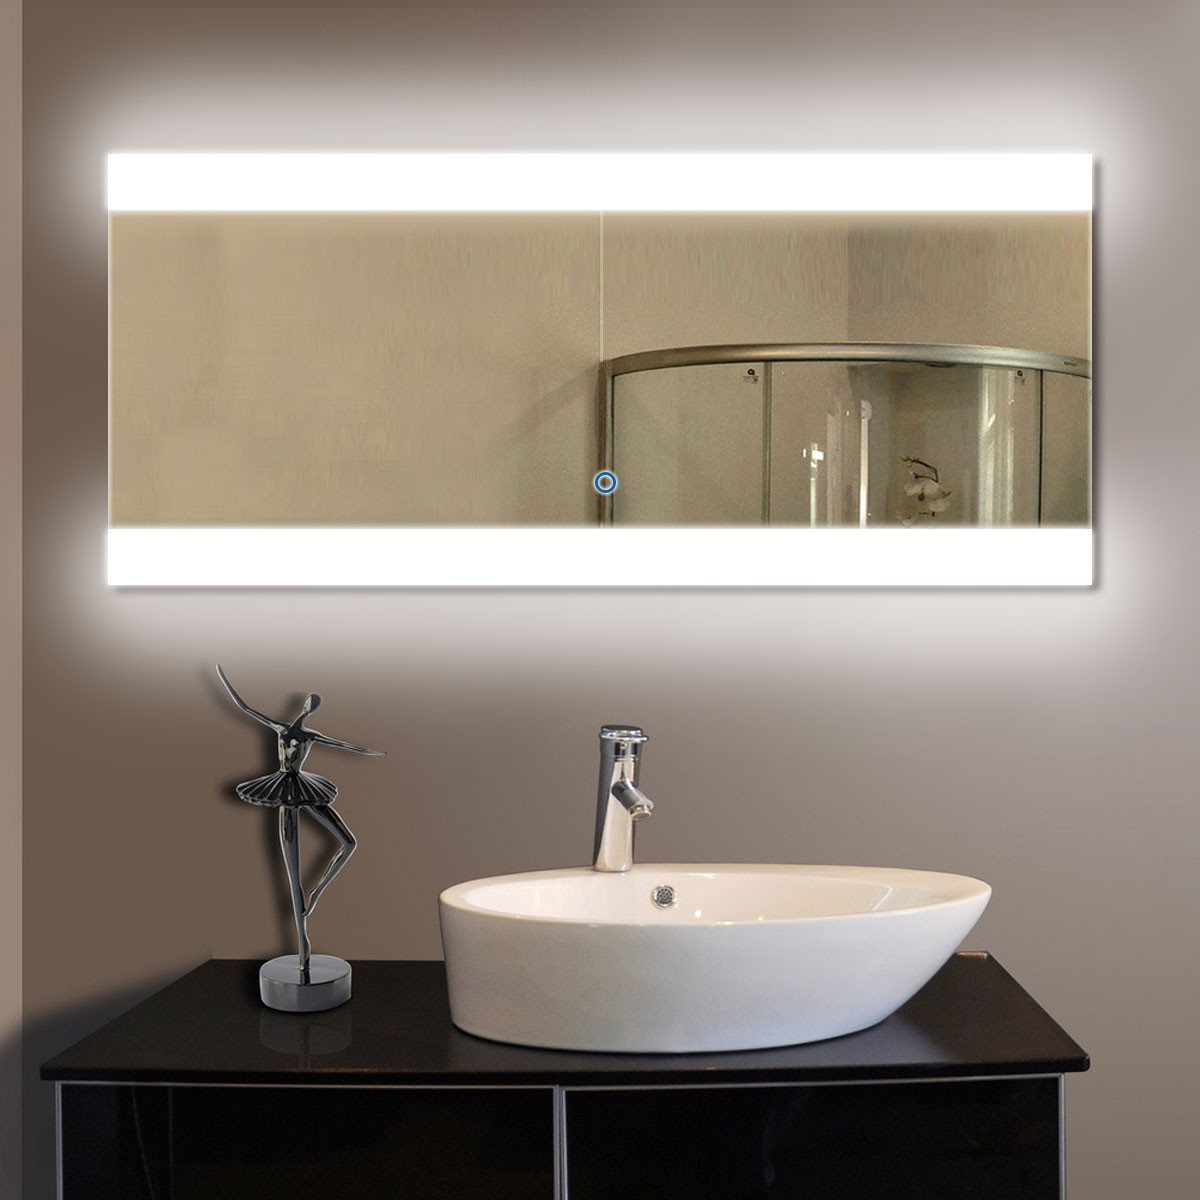 Bathroom Mirrors With Led Lights Sale 80 X 36 In Horizontal Led Bathroom Silvered Mirror With